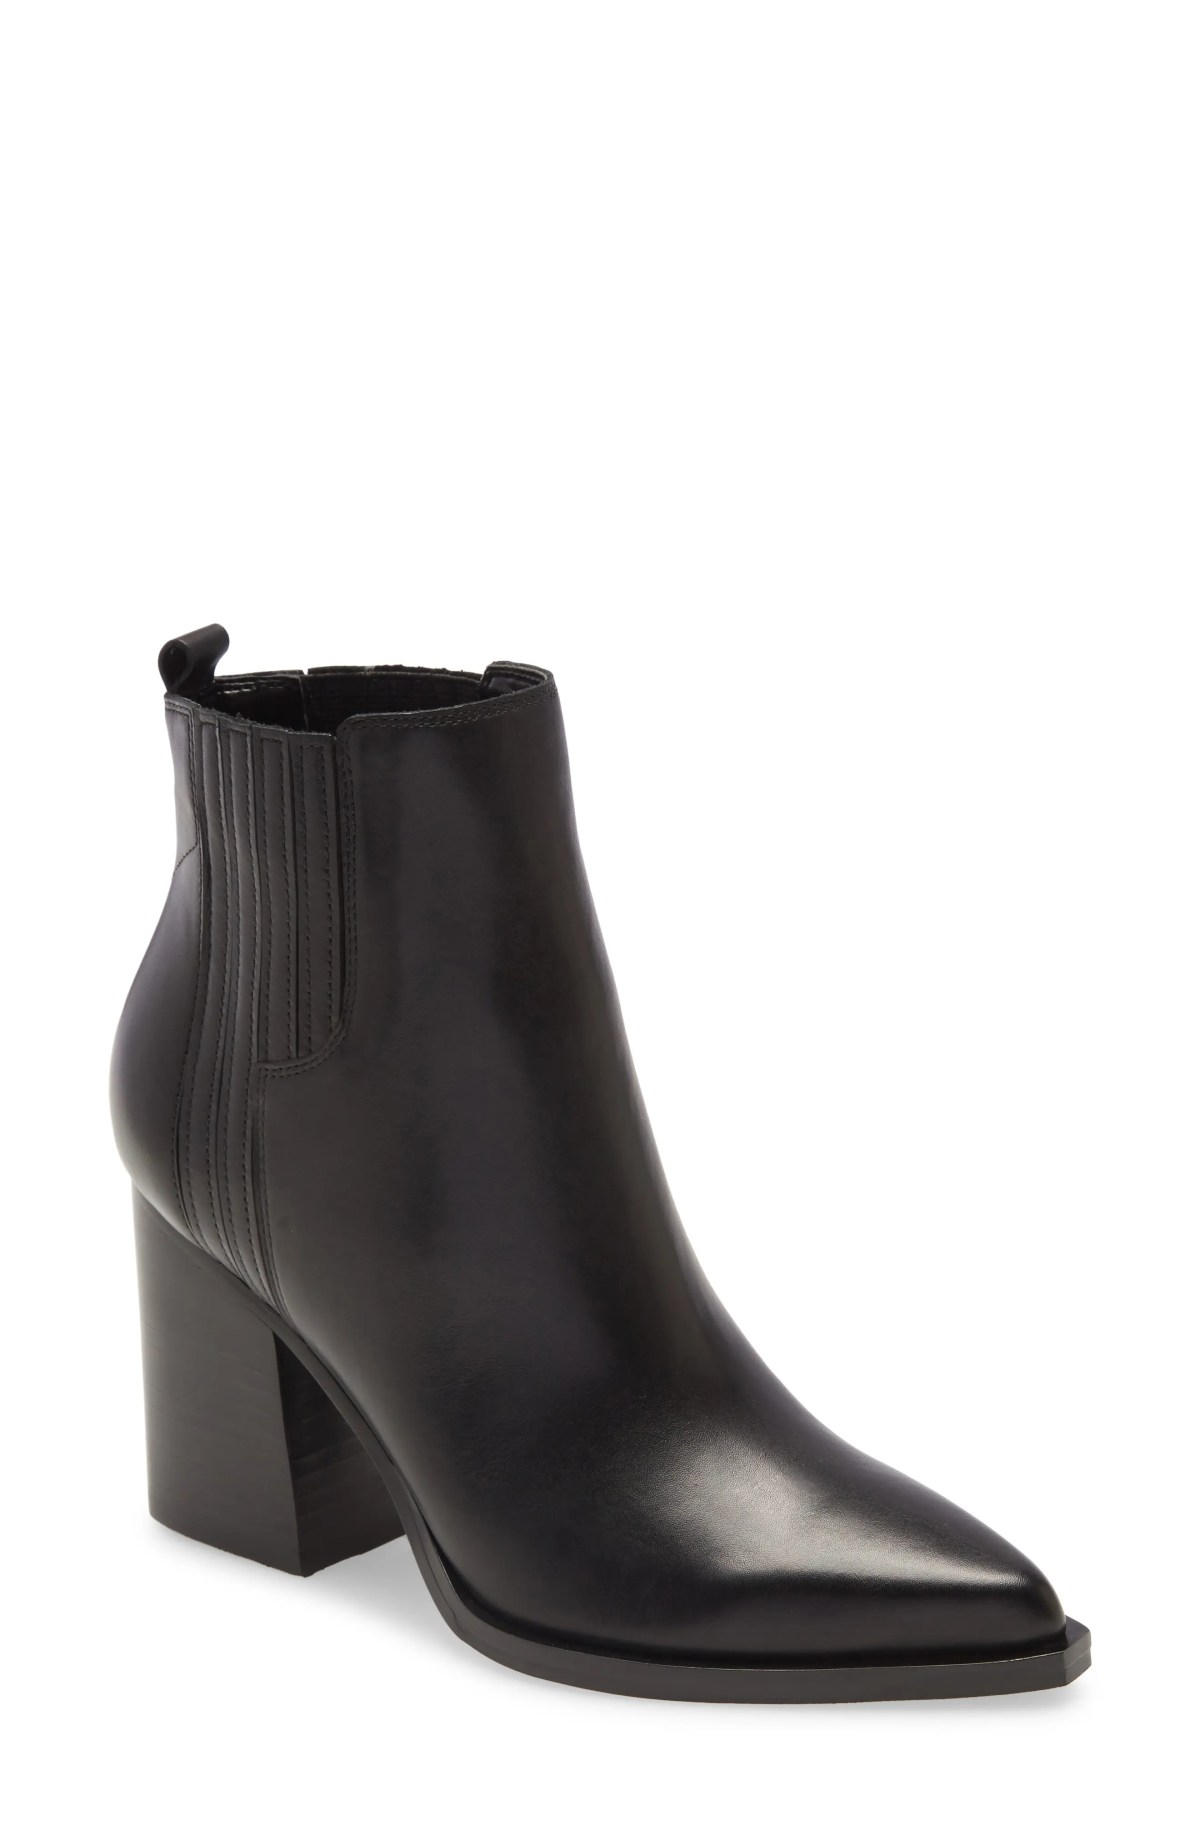 MARC FISHER LTD Oshay Pointed Toe Bootie, Main, color, BLACK LEATHER